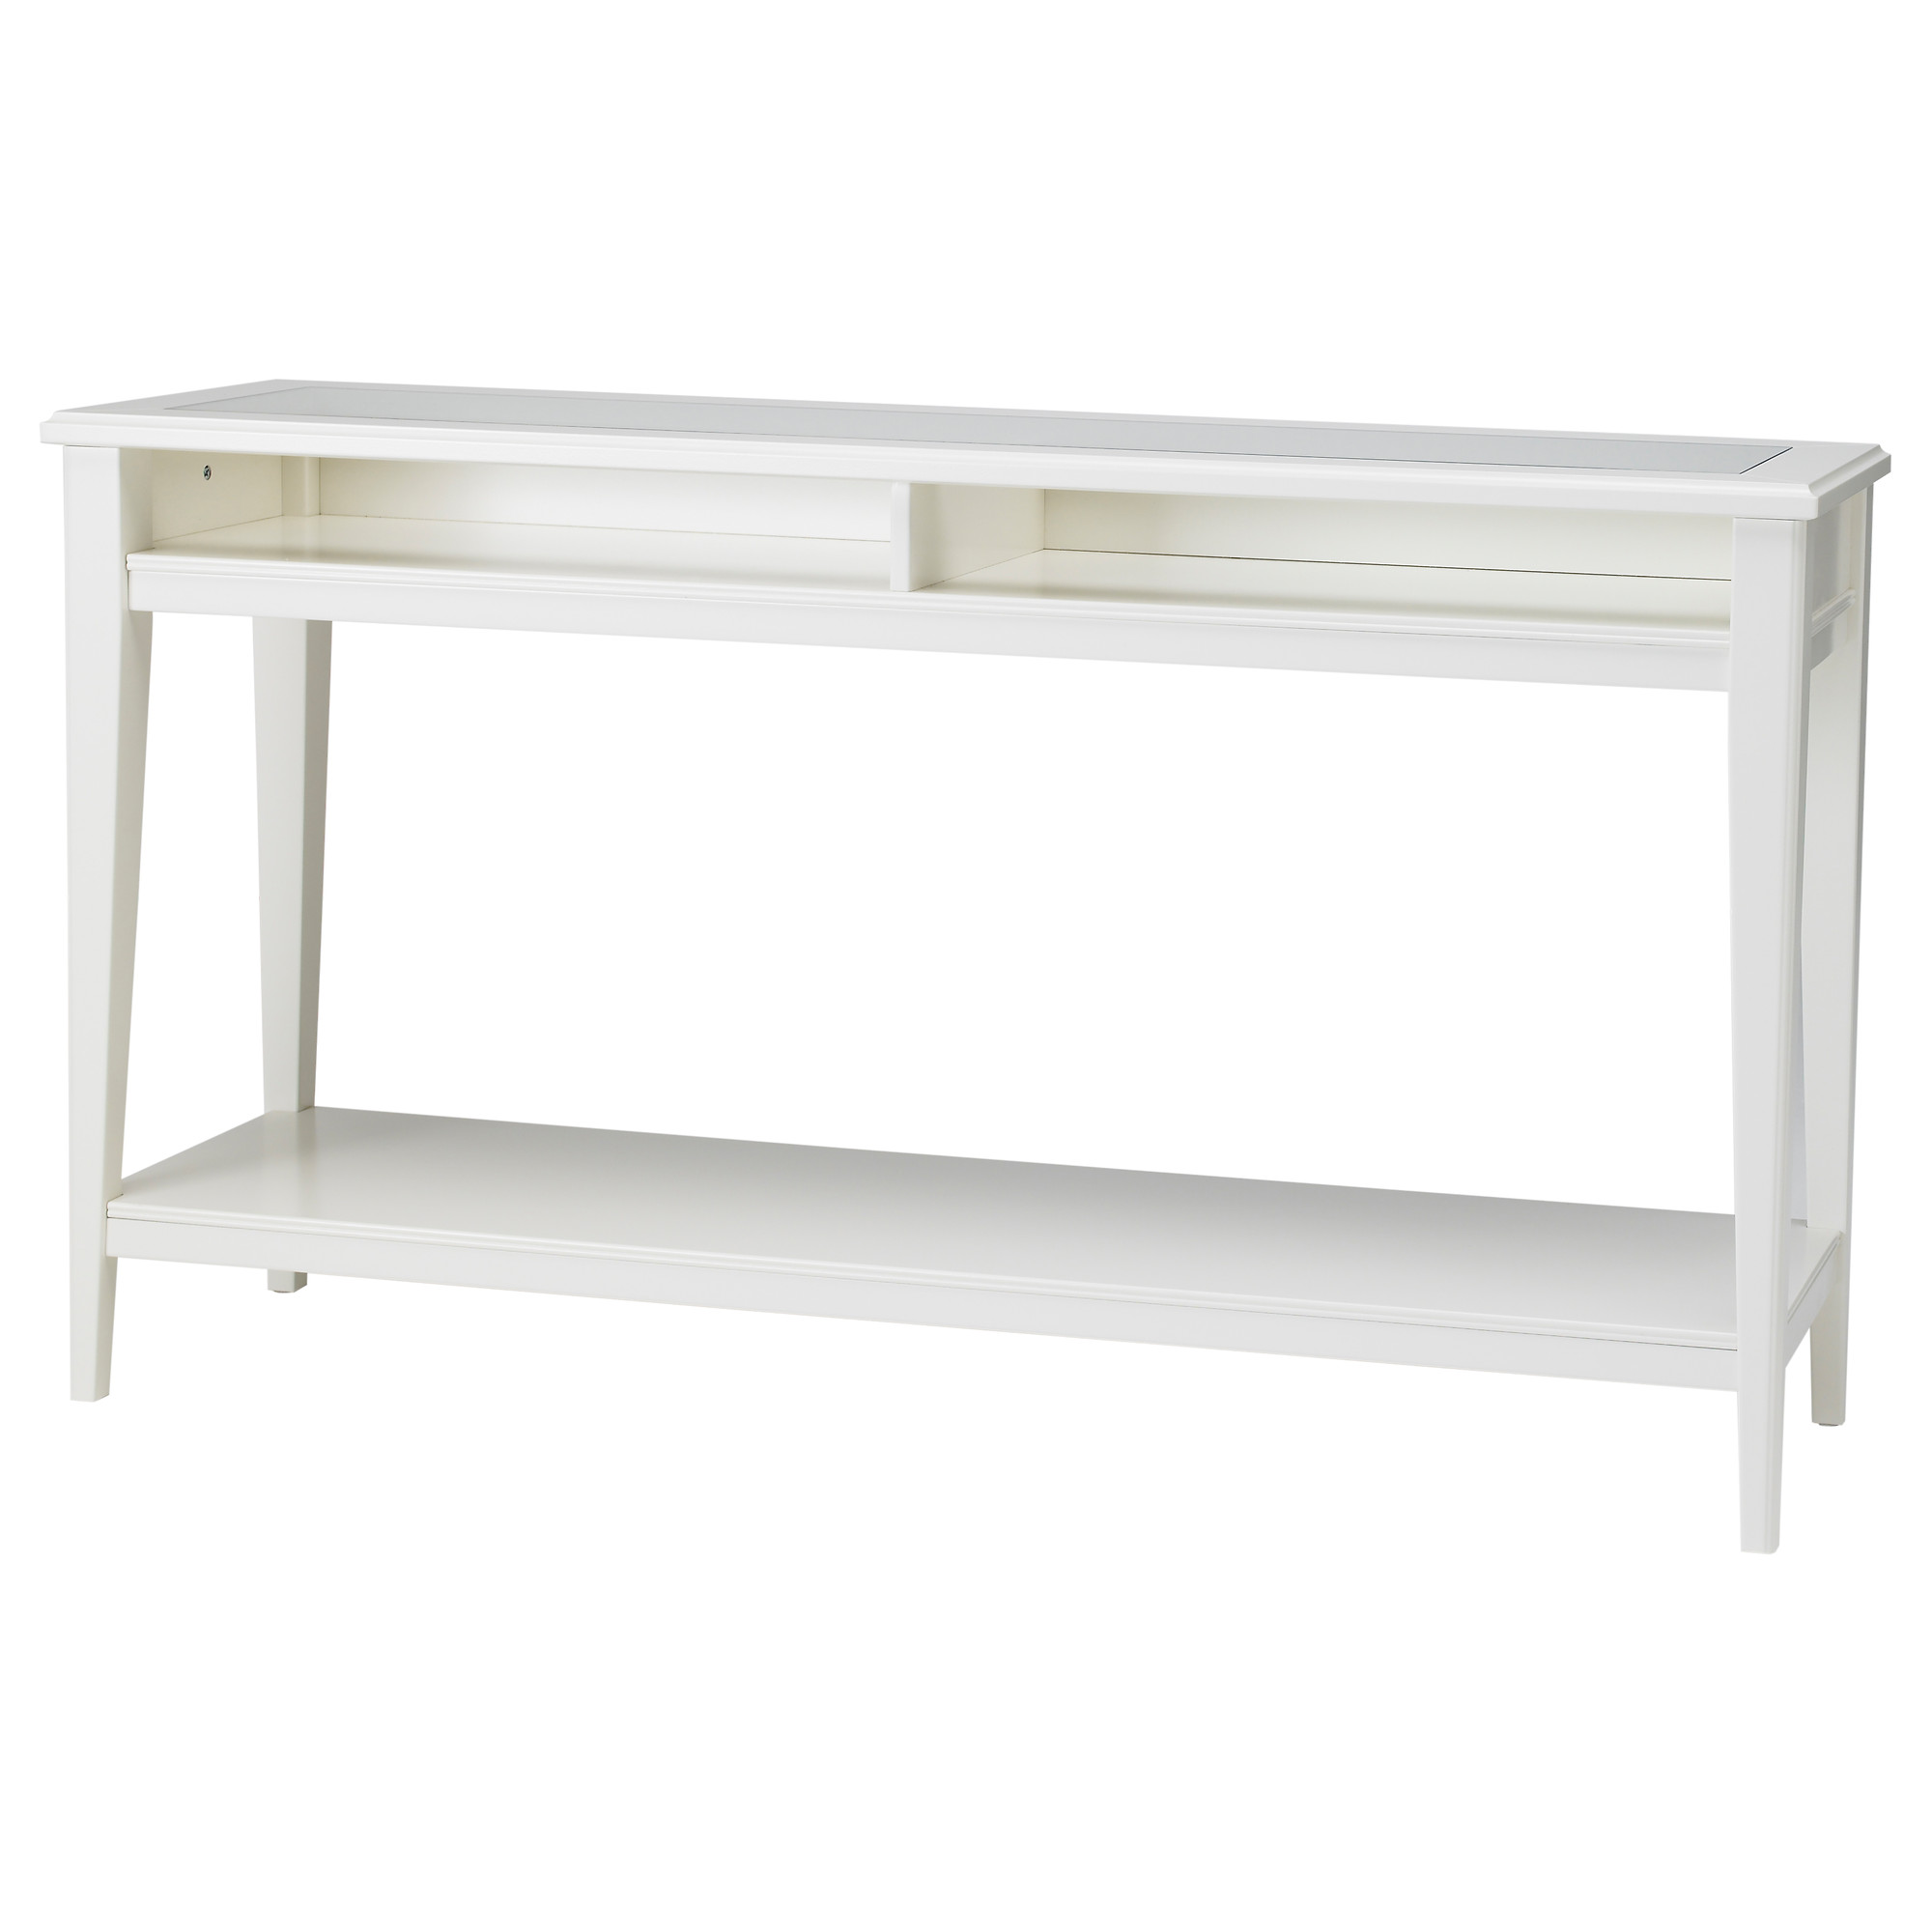 Meuble Tv Vima Dazzling Console Tables Ikea With Storage Beneath Painted